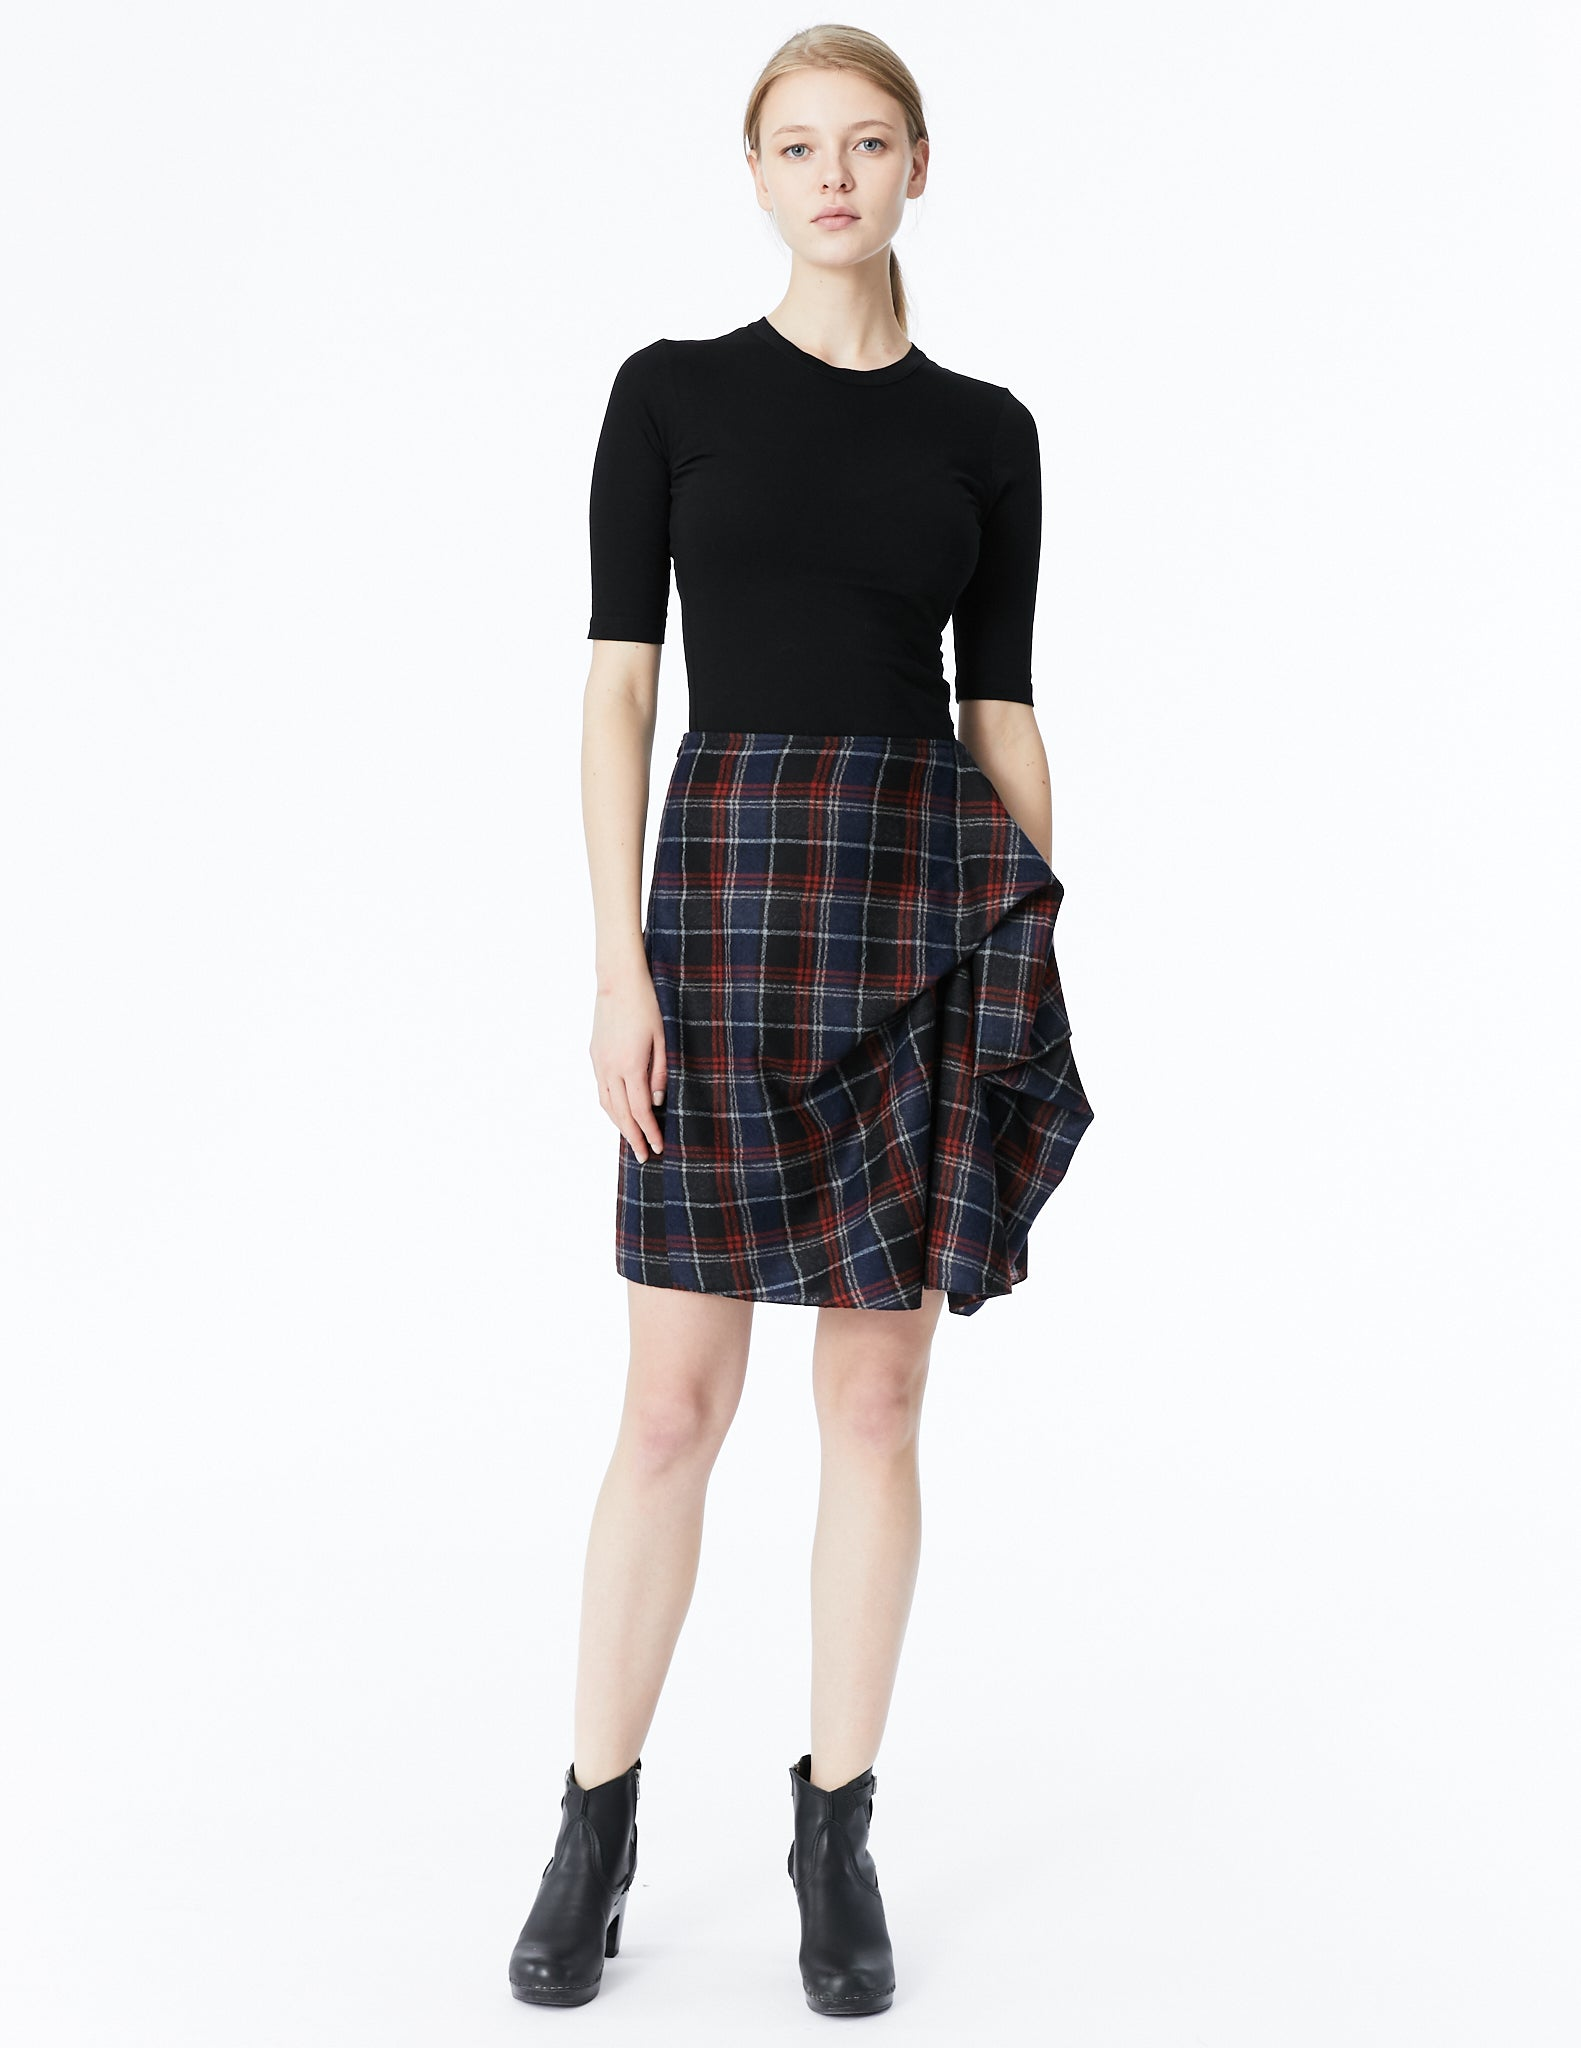 morgane le fay skirt with front drape and back pleats